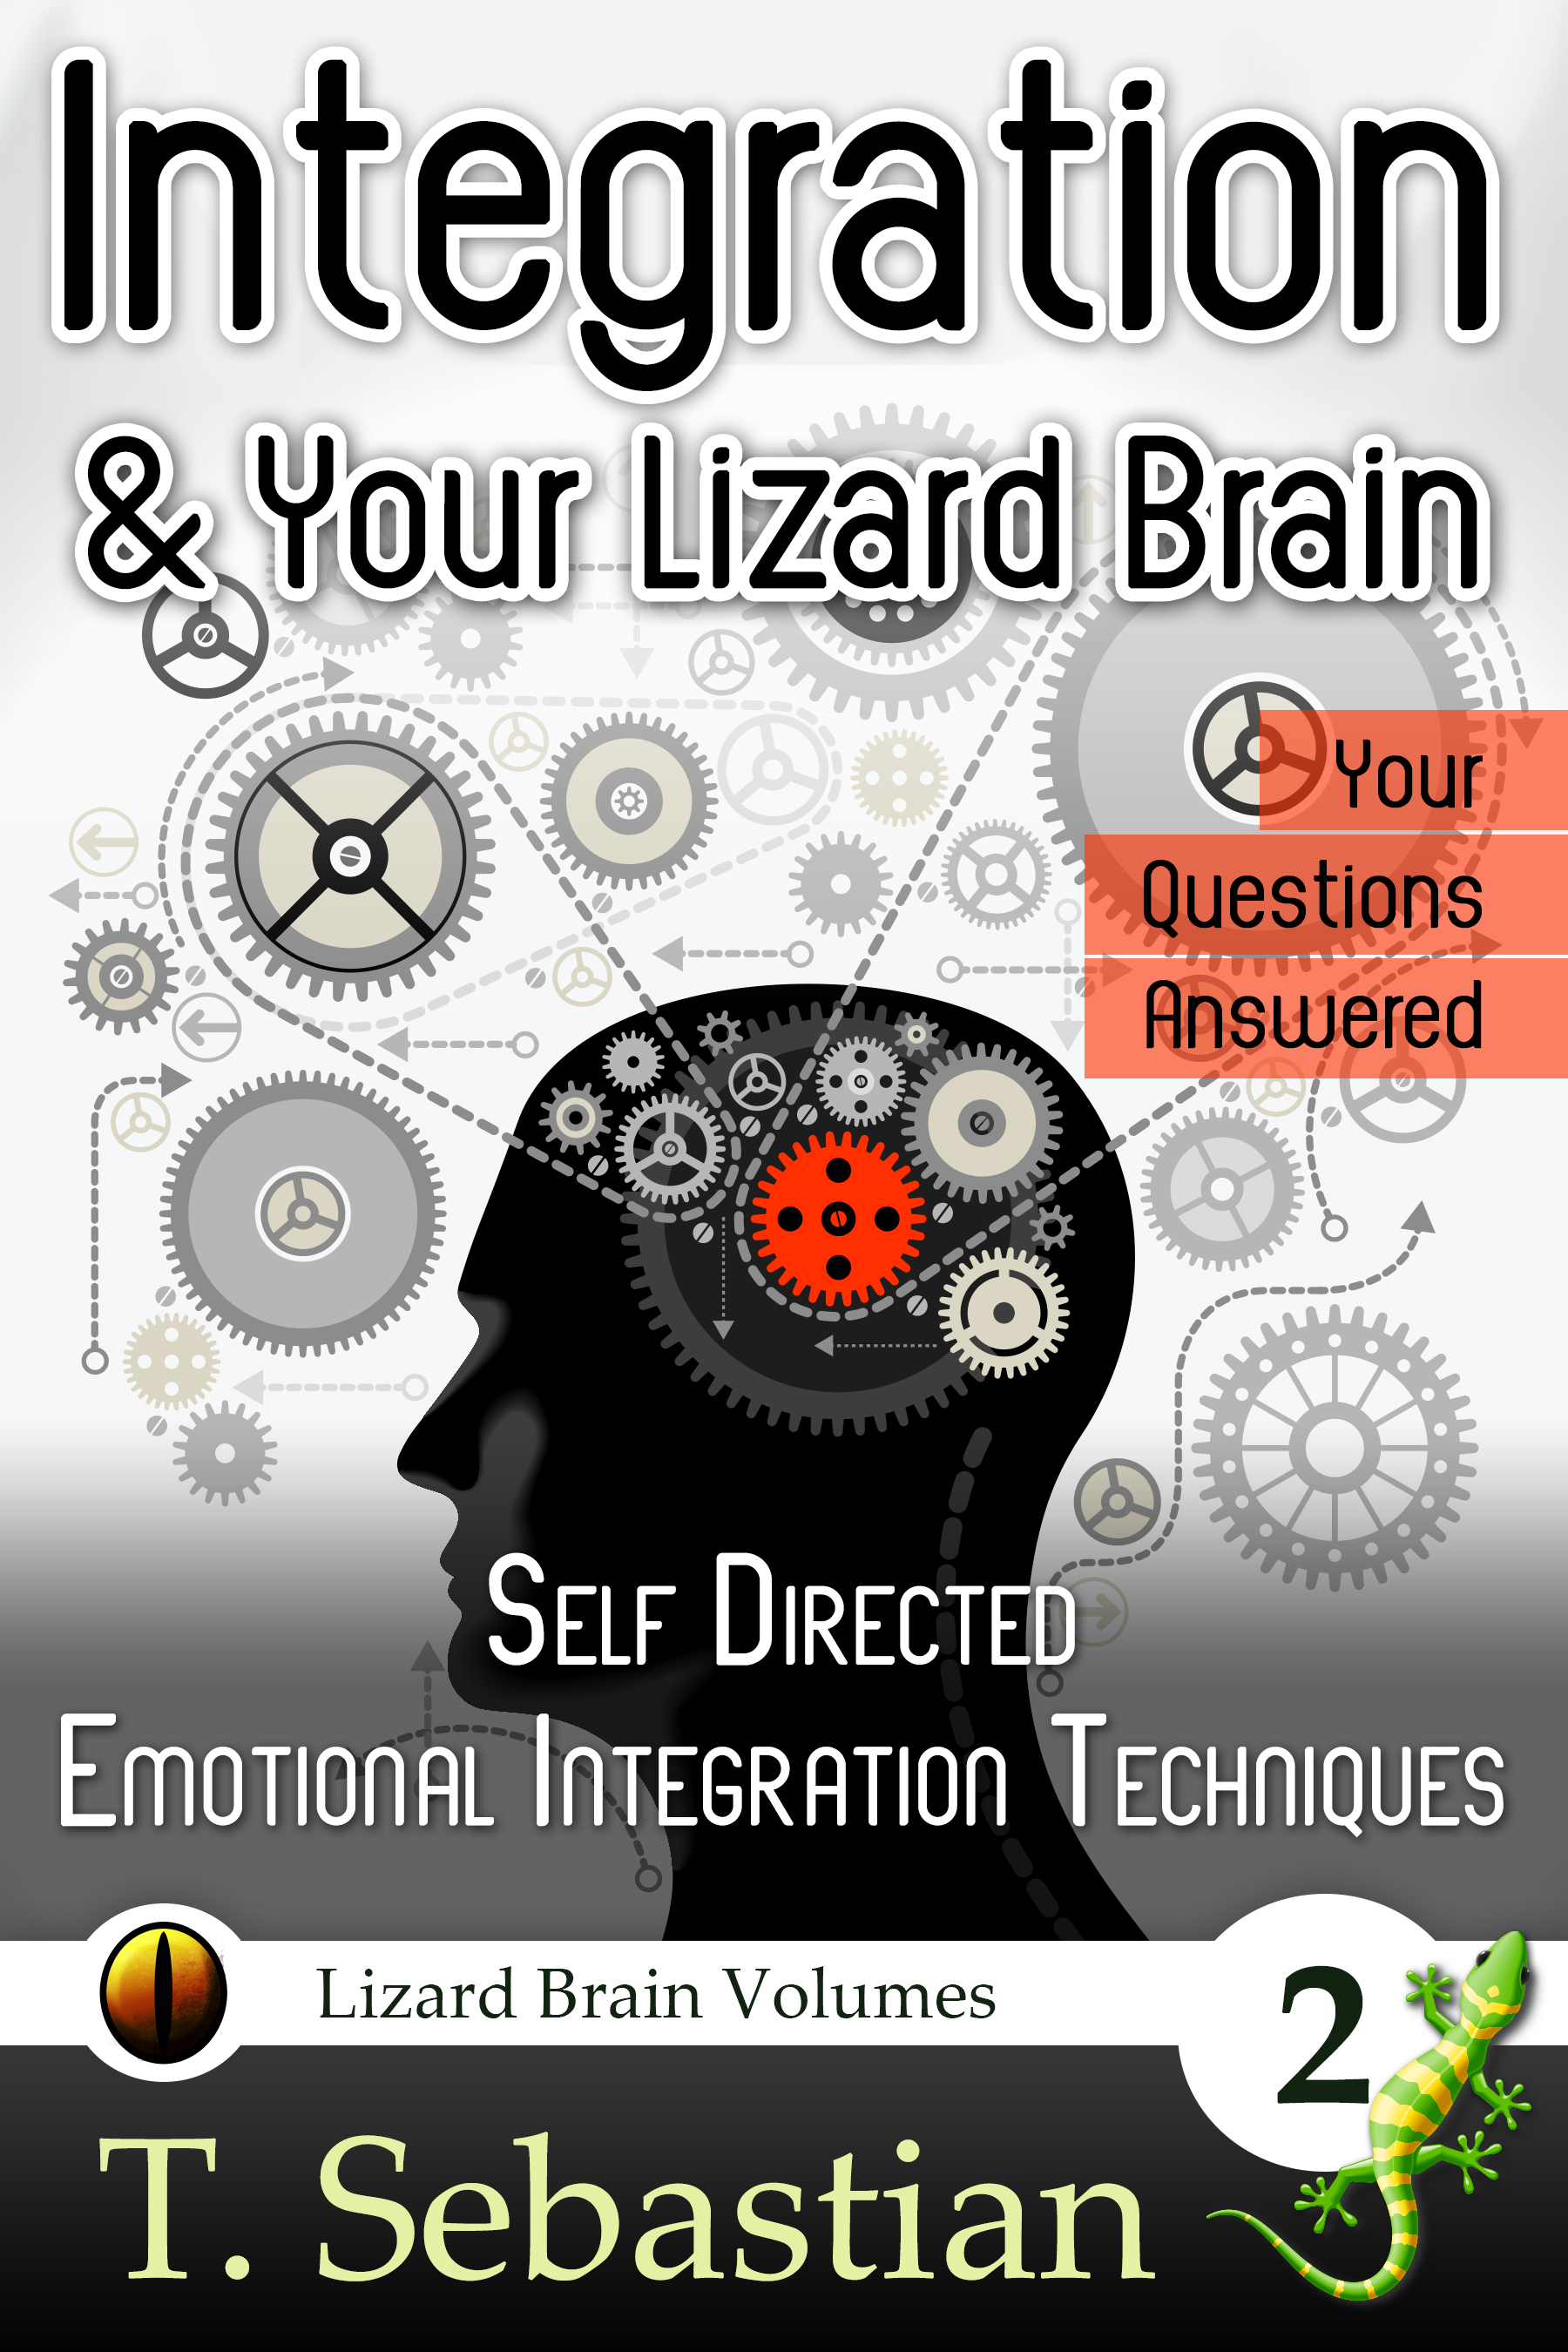 Integration & Your Lizard Brain